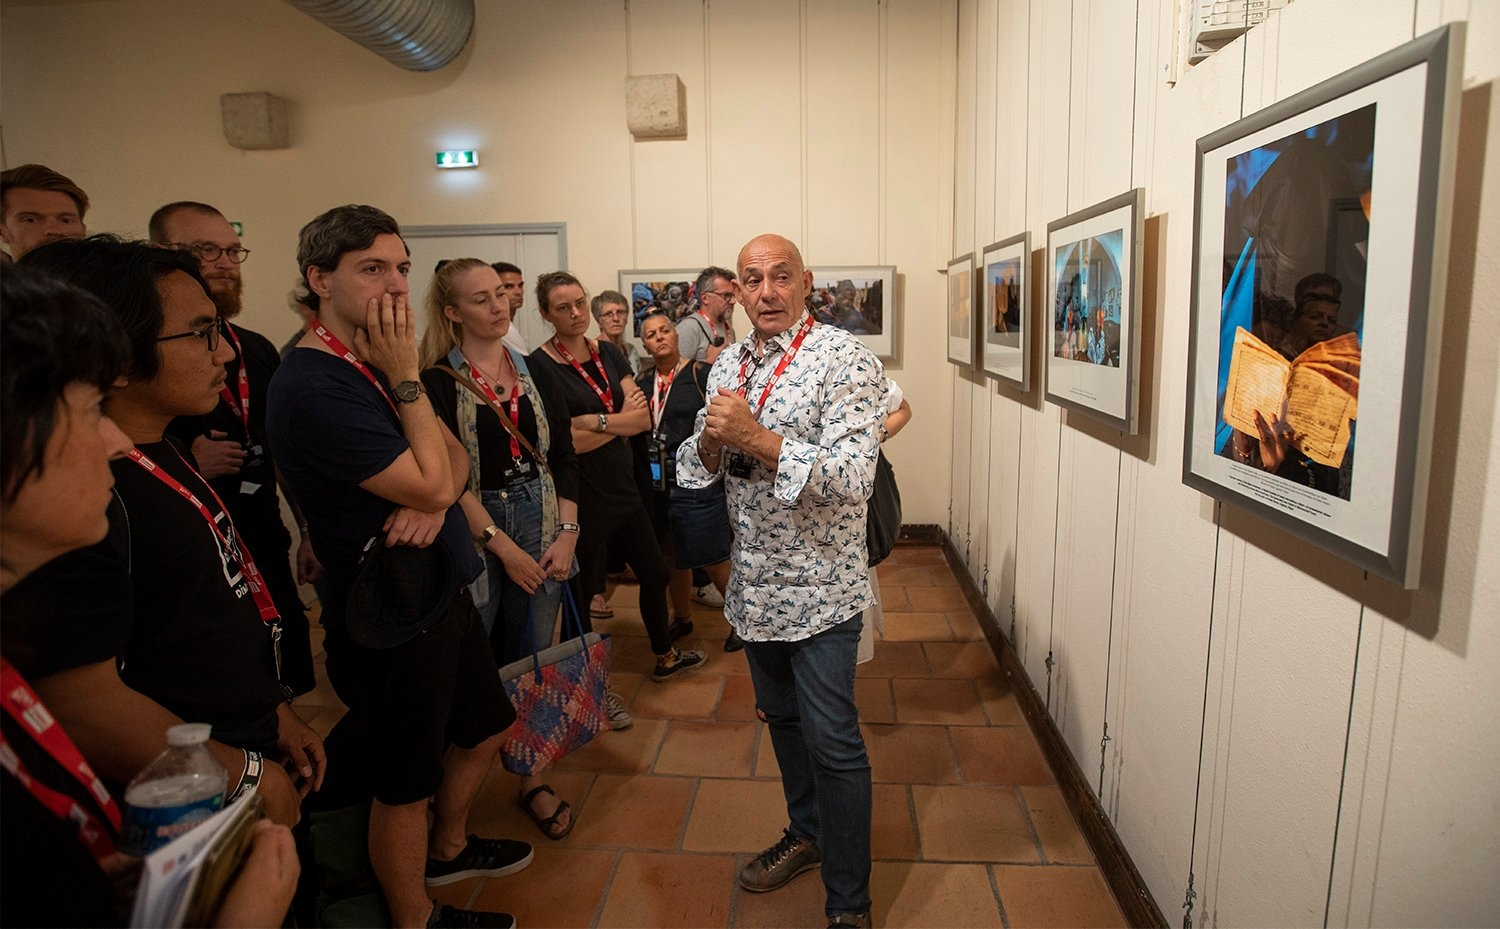 Pascal Maitre gives a tour of his exhibition, covering refugees crossing the Sahel desert. © Paul Hackett